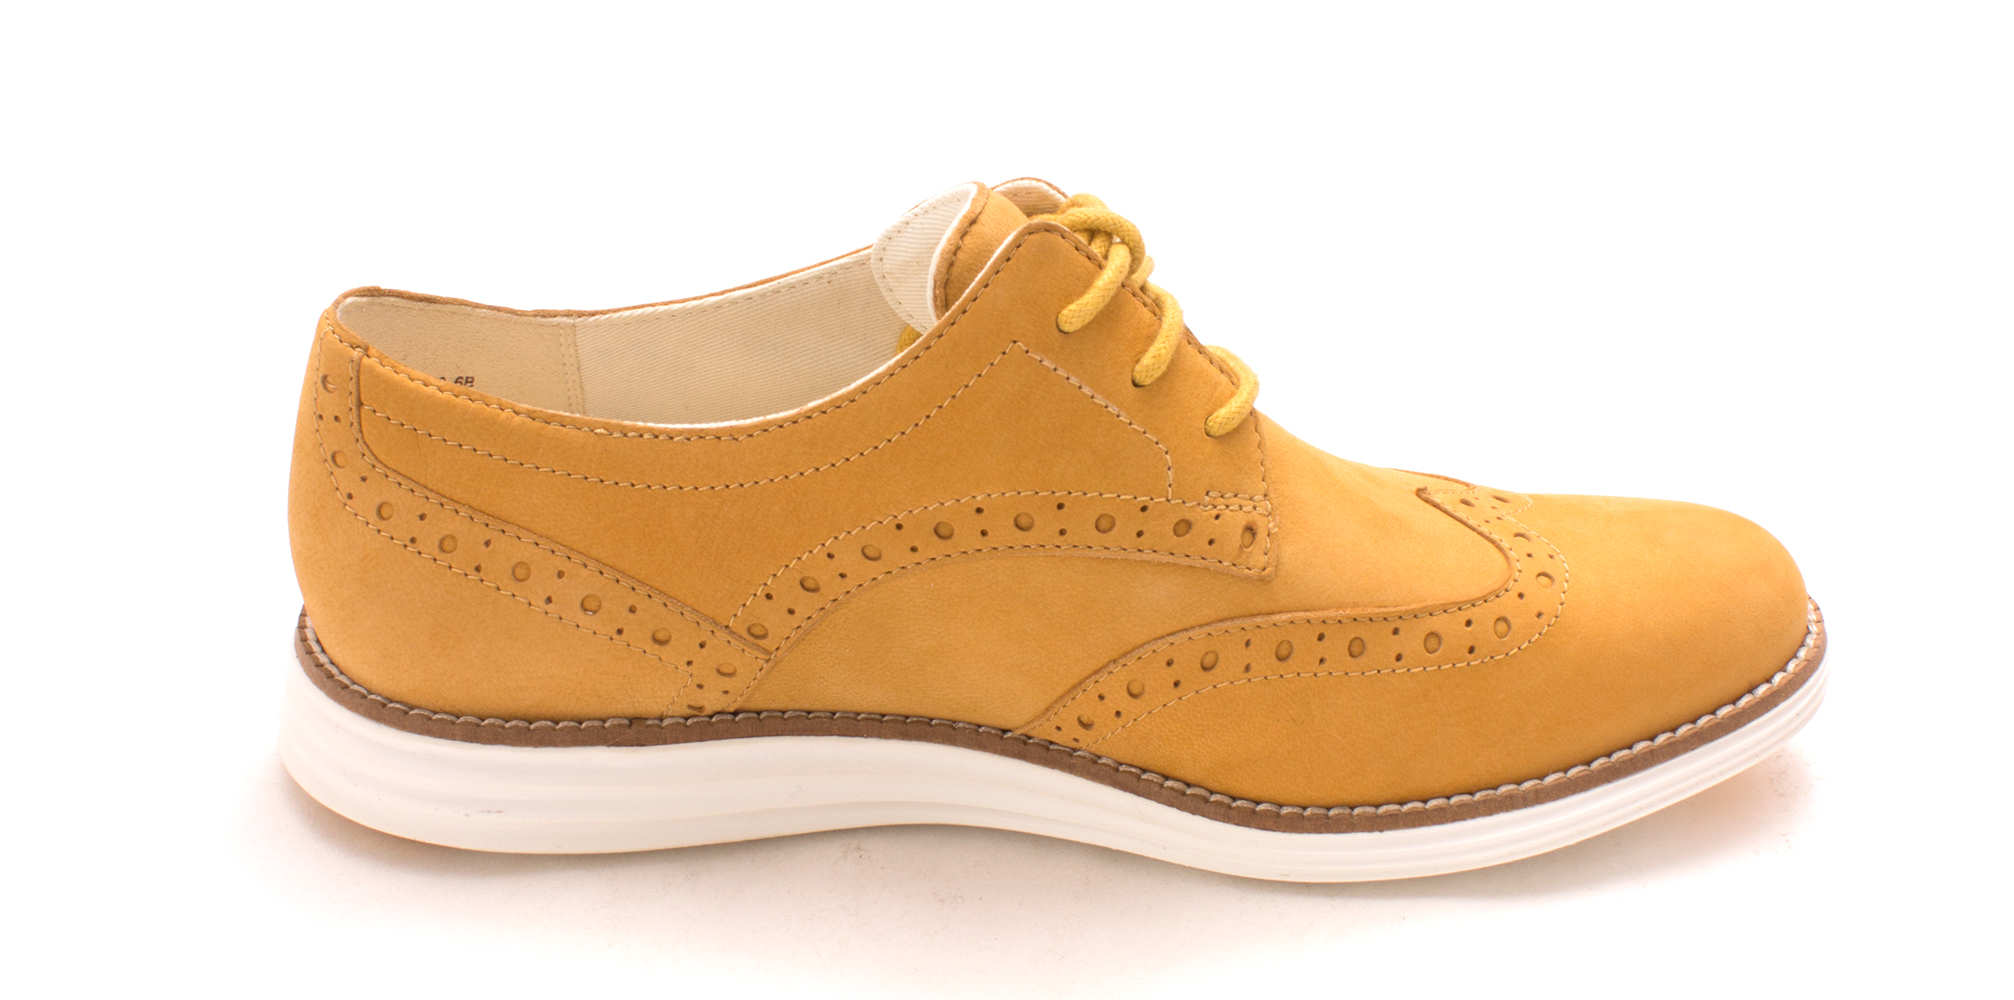 Cole Haan Womens Maiyasam Low Top Lace Up Fashion Sneakers, Wheat, Size 6.0